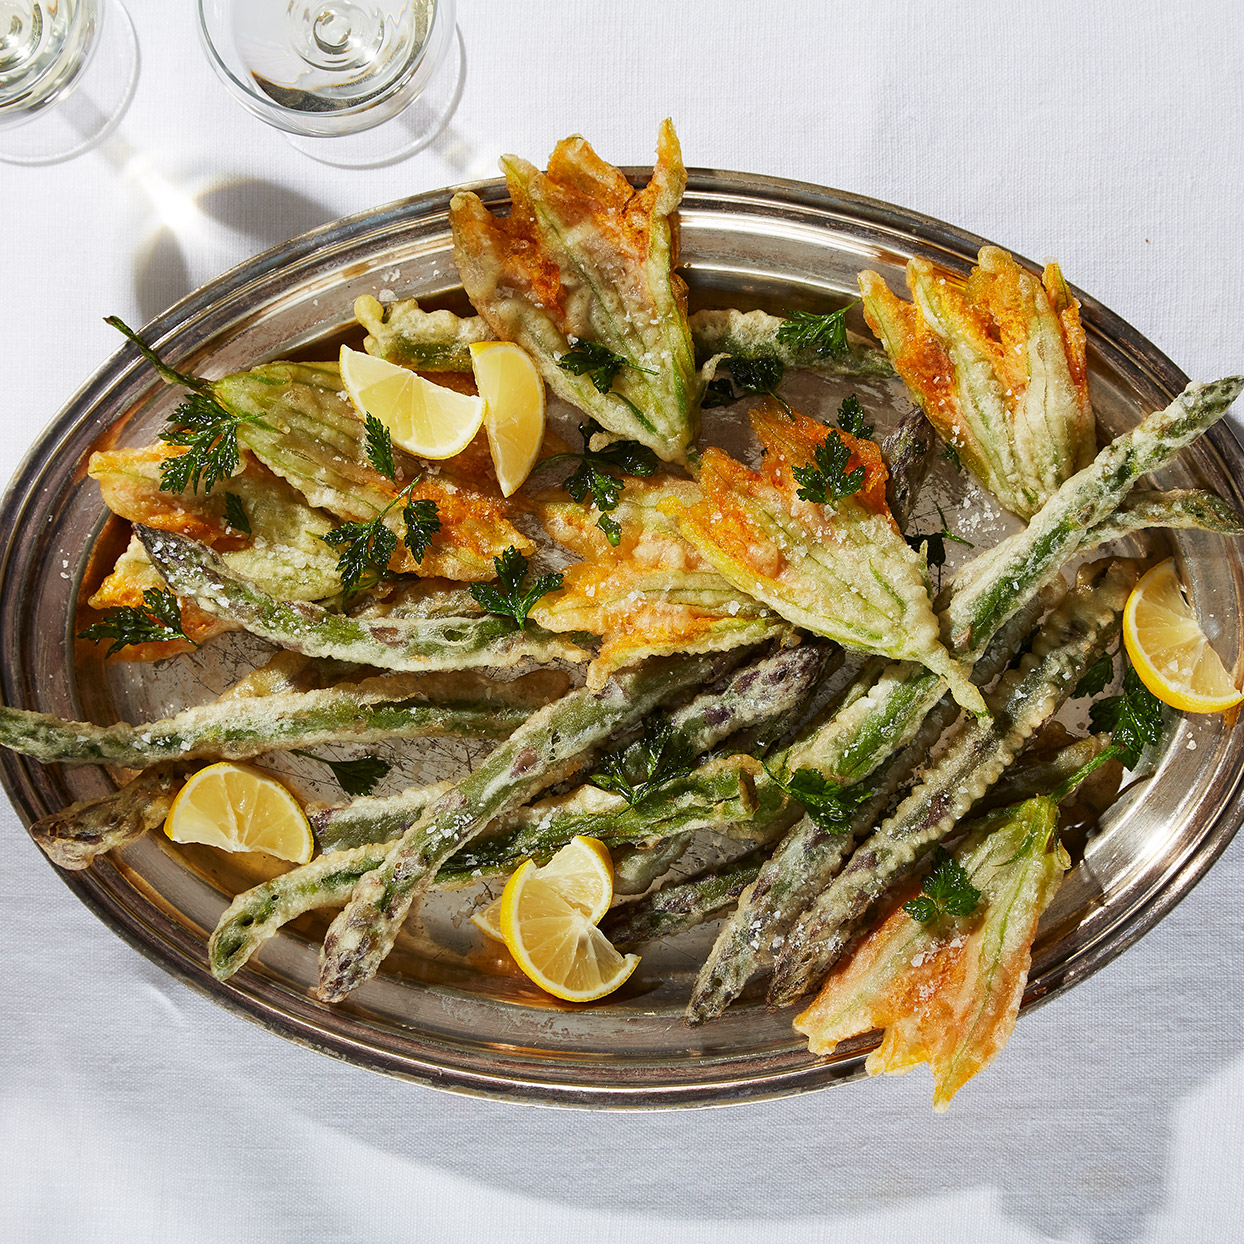 Fried Asparagus & Squash Blossoms